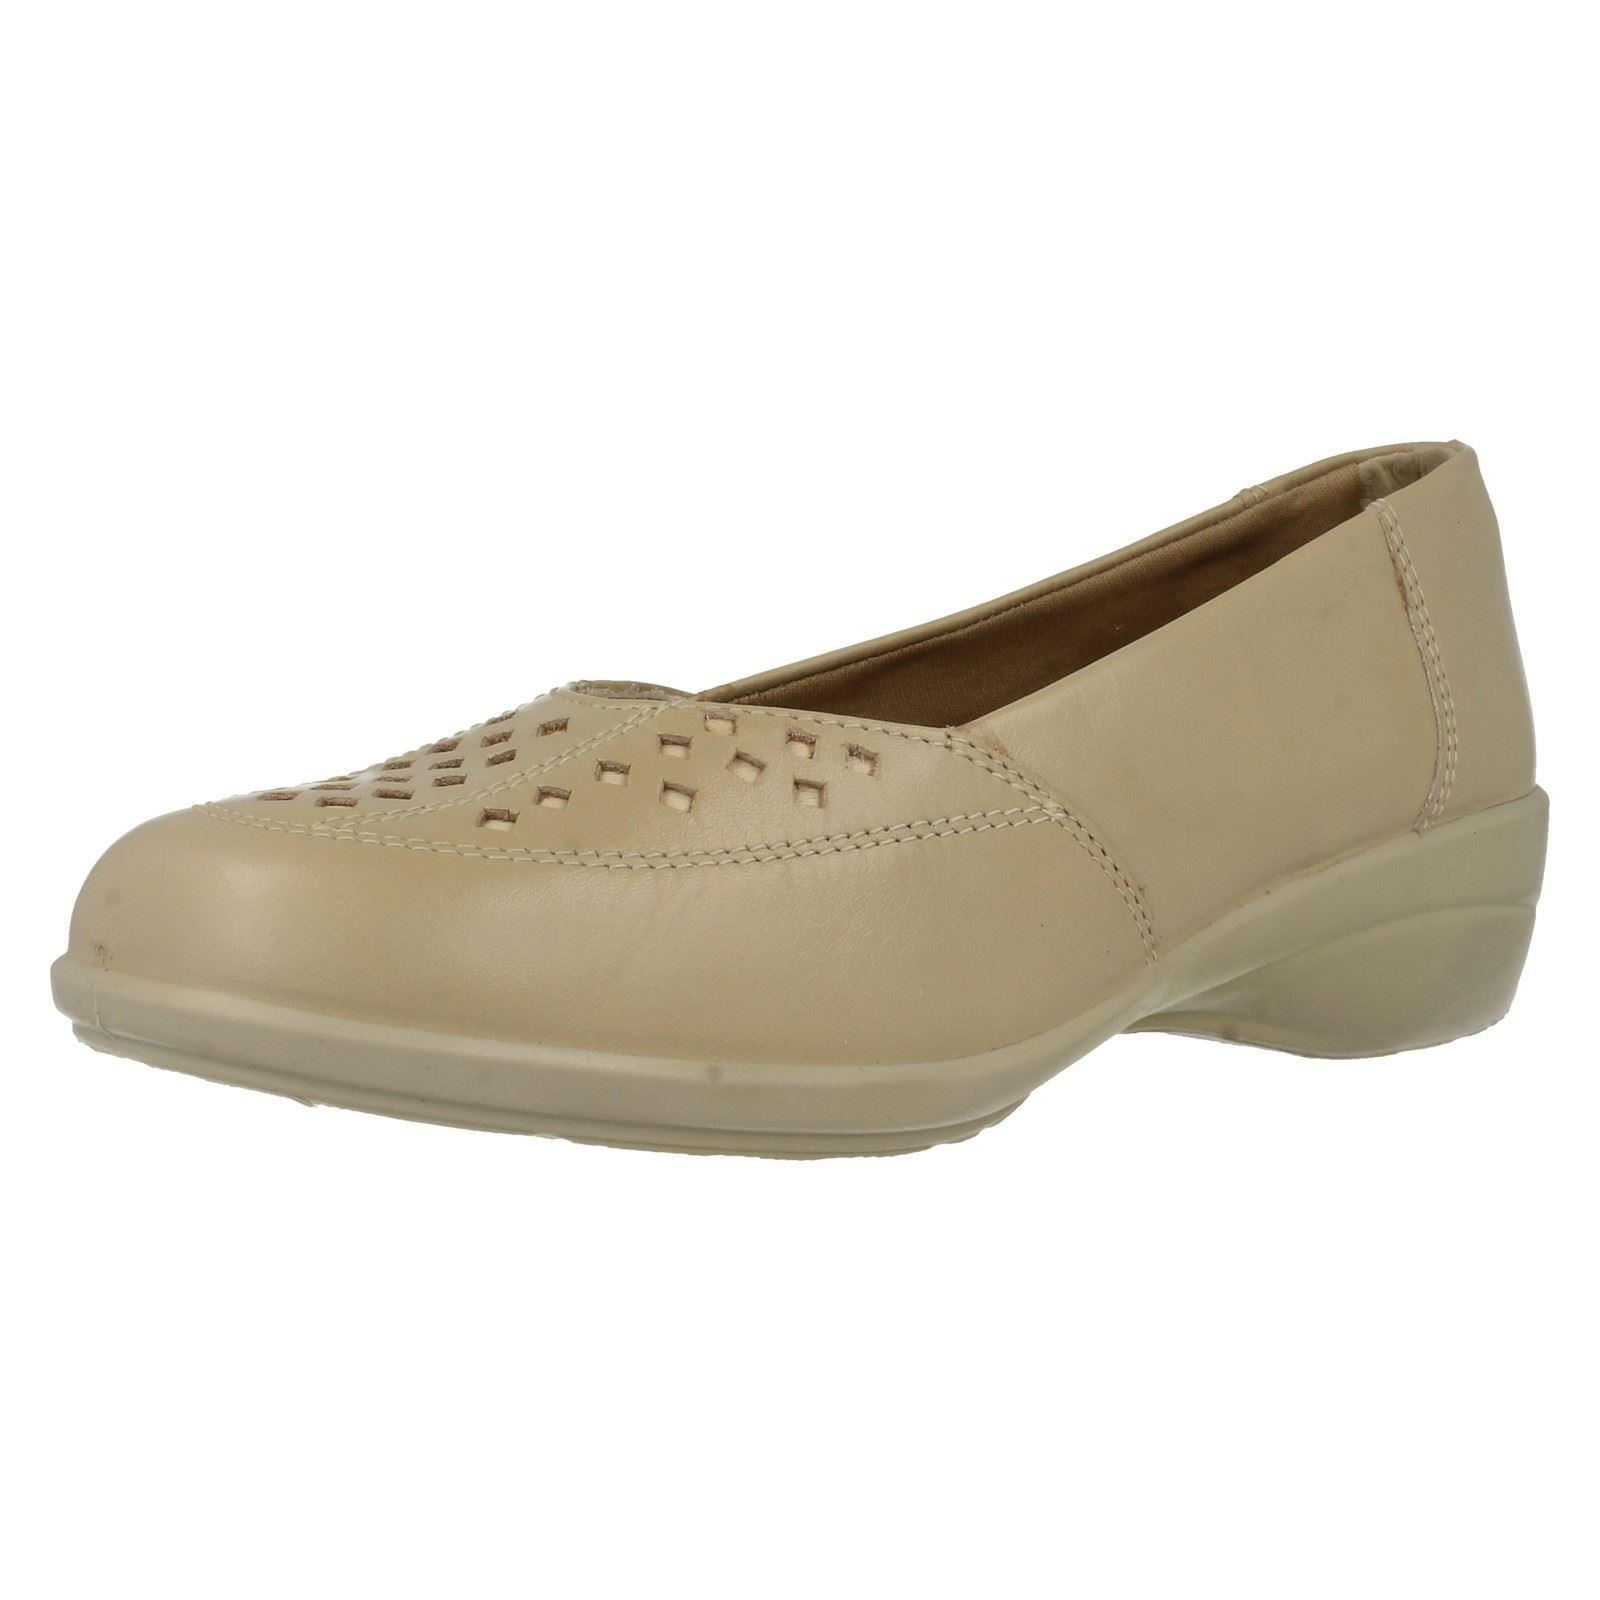 Ladies EasyB Beige Slip On Shoes In EE Fit 'Jubilee' The Style ~ K